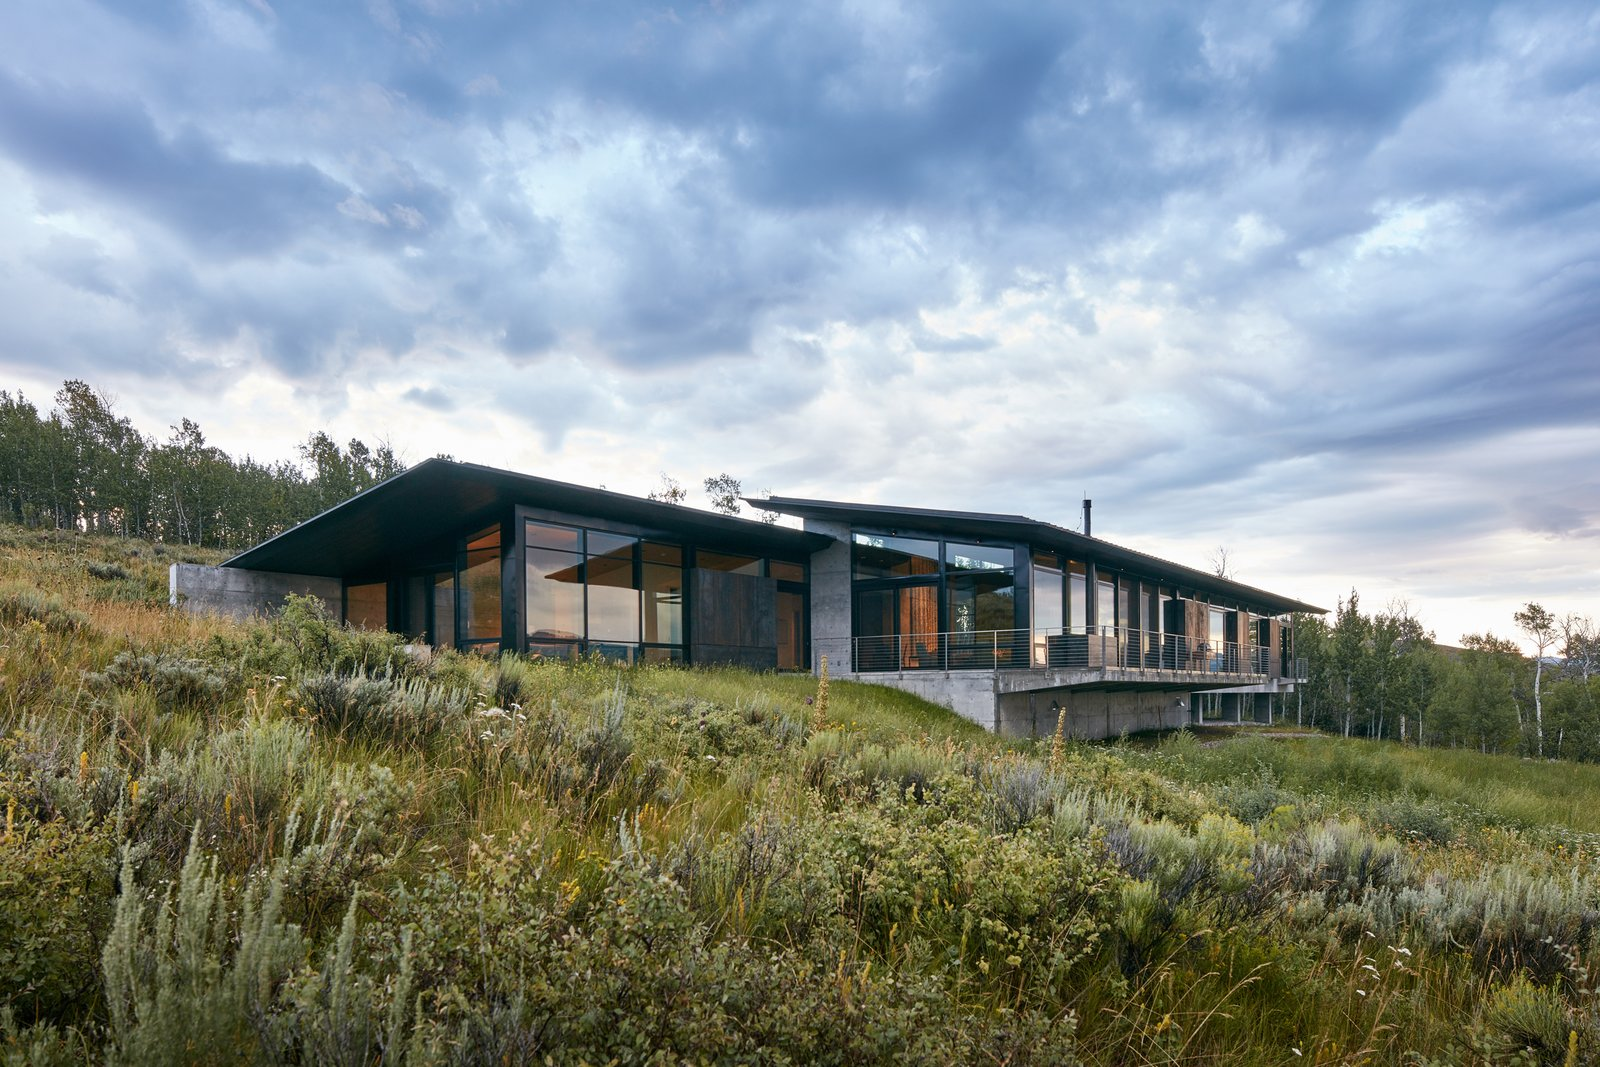 From the entrance, the cantilevered structure wraps around to reveal a comparatively more modest side that bows to the mountains and floats on the meadow. Tagged: Exterior, House, Concrete Siding Material, Green Roof Material, Metal Siding Material, and Shed RoofLine.  Wyoming Residence by Abramson Teiger Architects